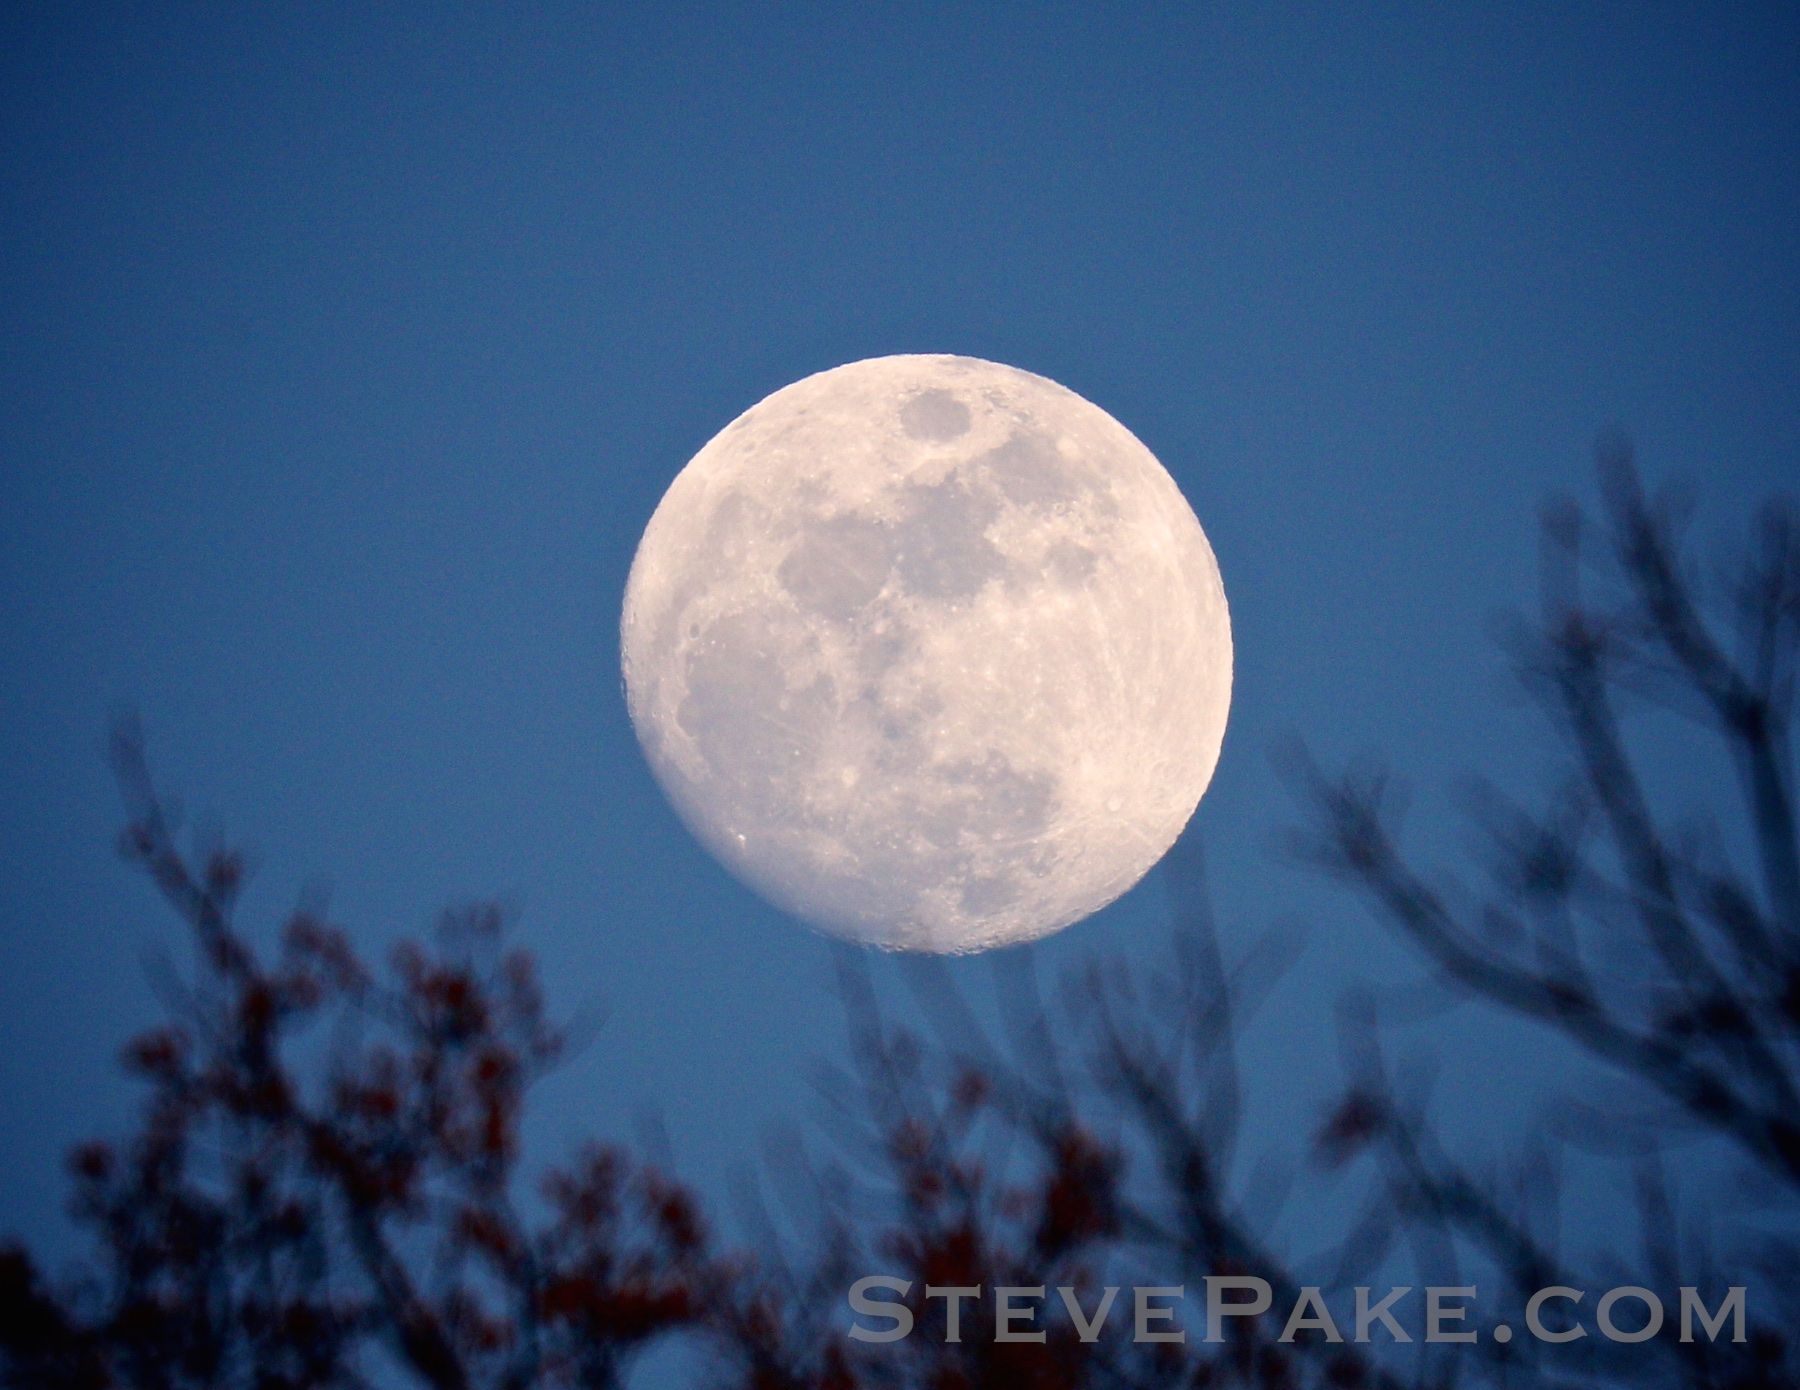 Moonrise, with a Canon 7D Mark II and a Canon 100-400mm lens.